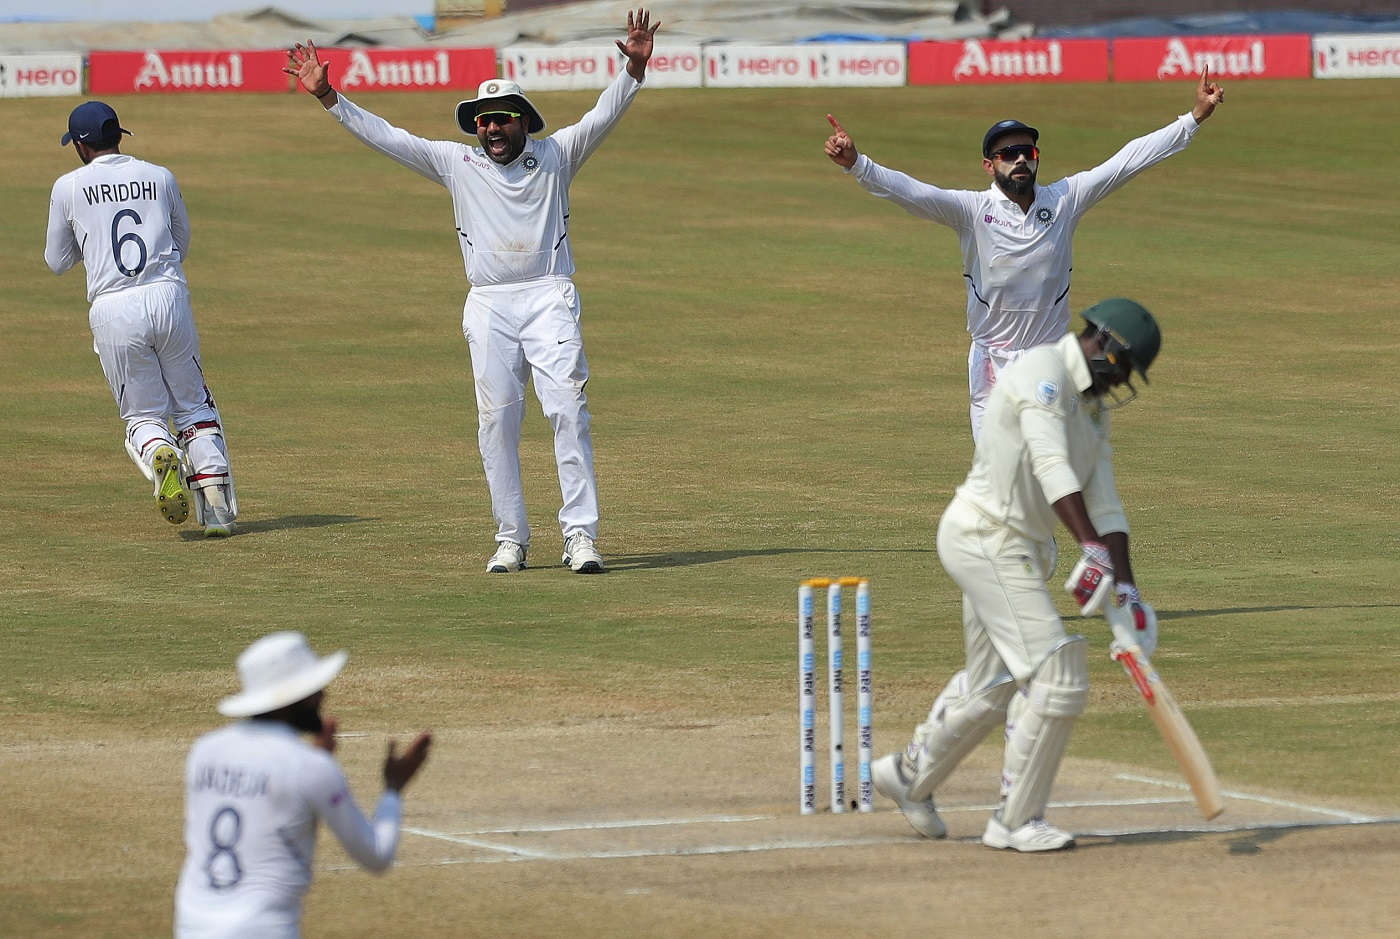 The winning moment for Team India | Associated Press